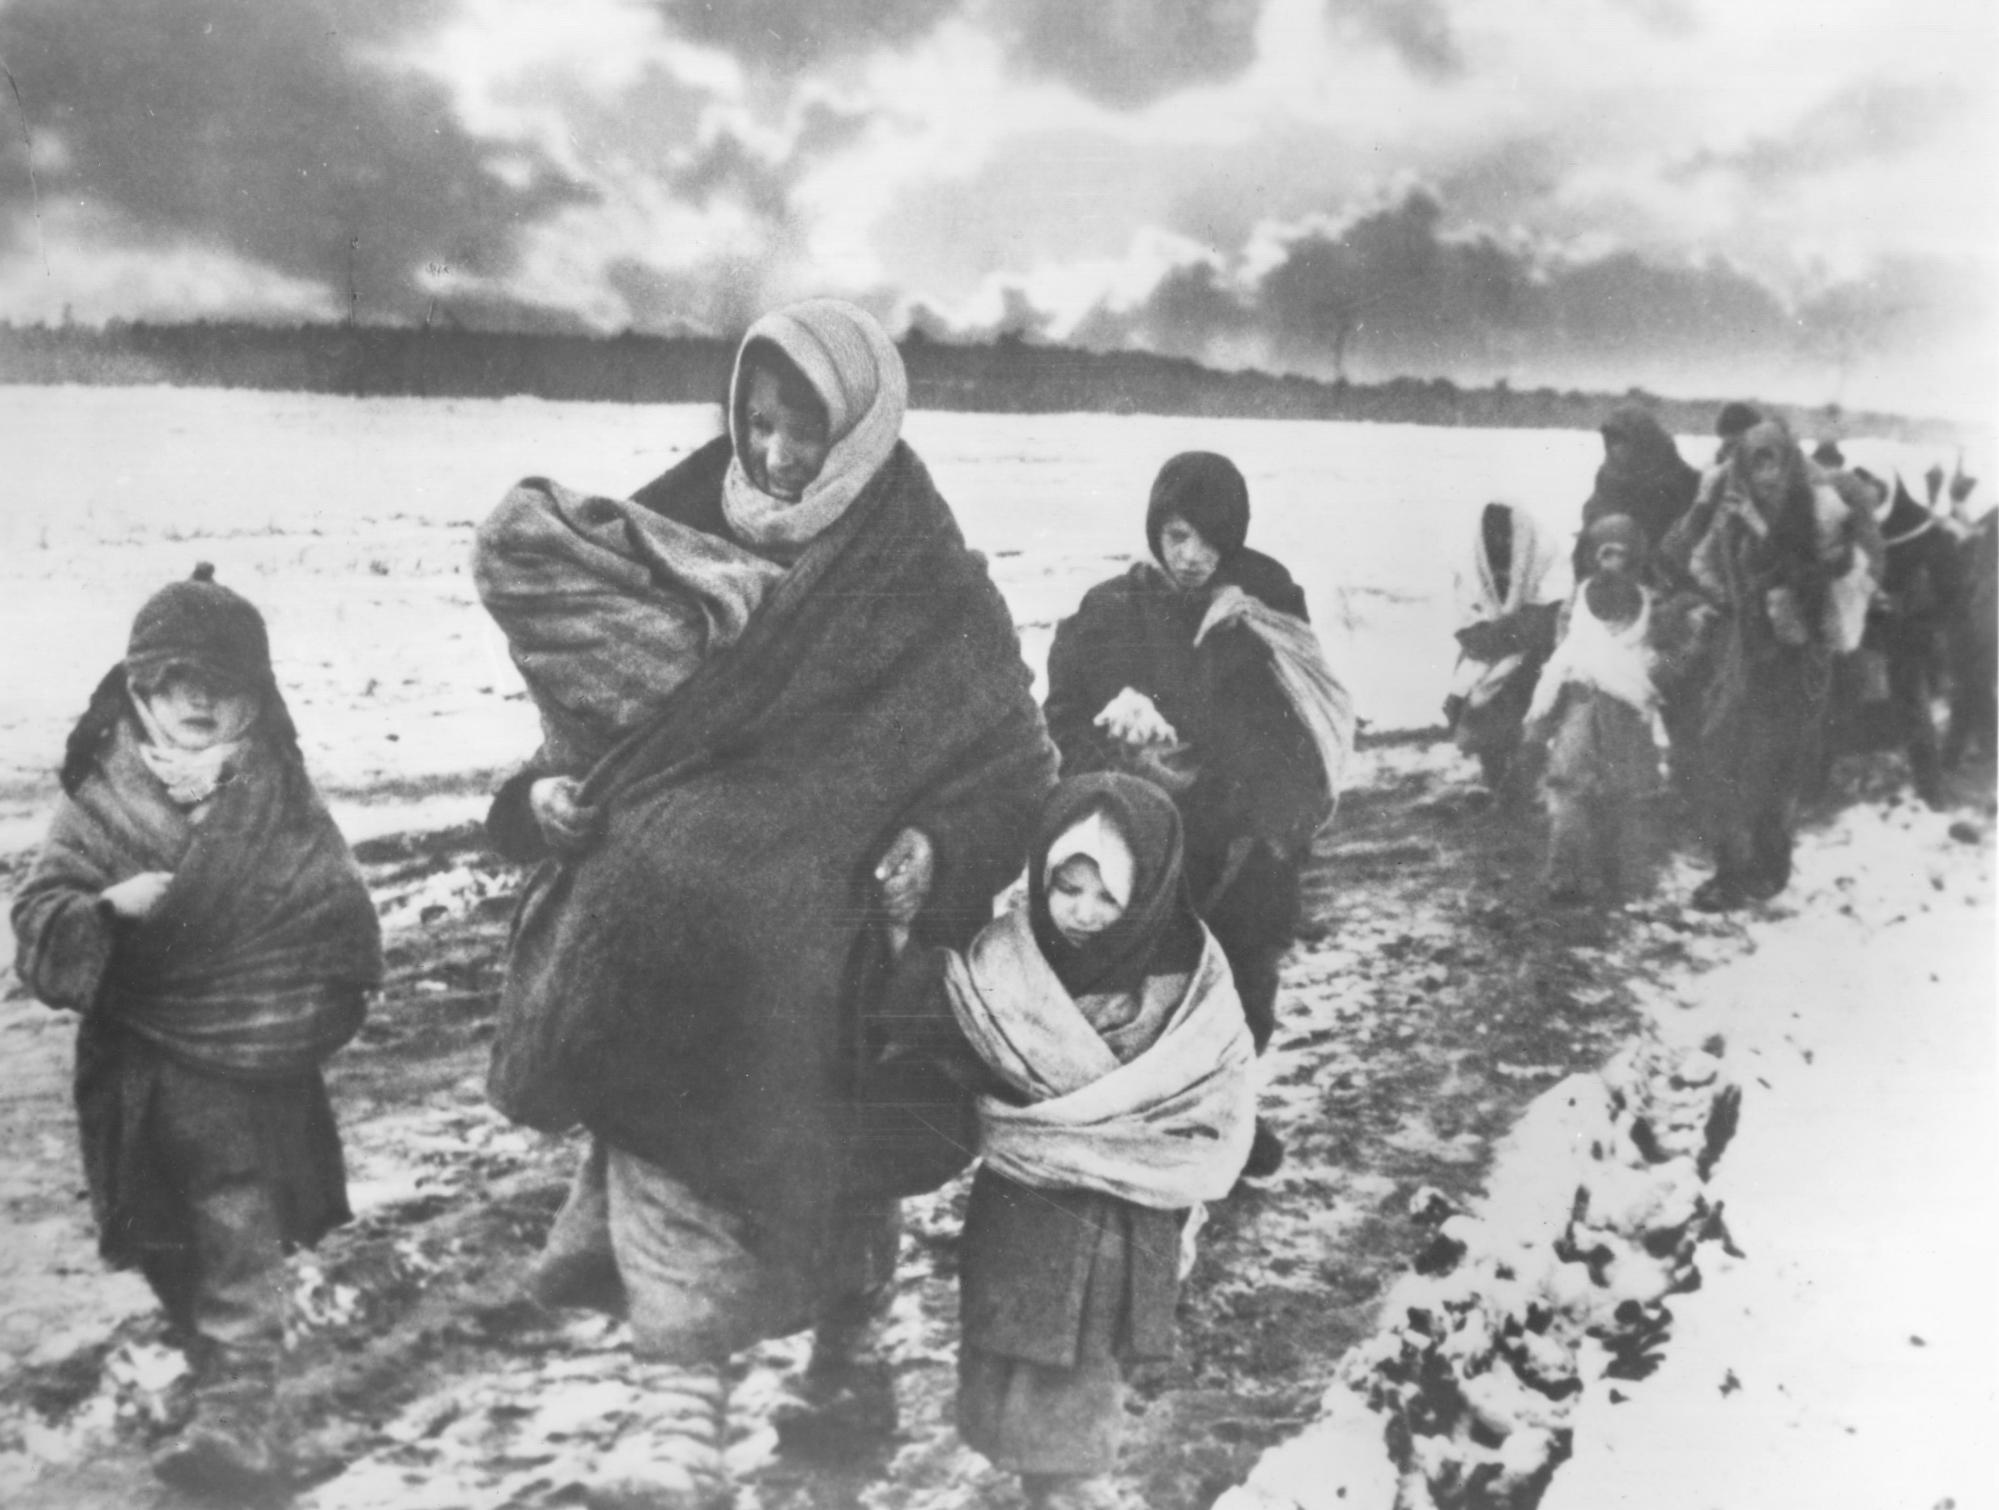 Russian refugees flee from advancing Nazi troops